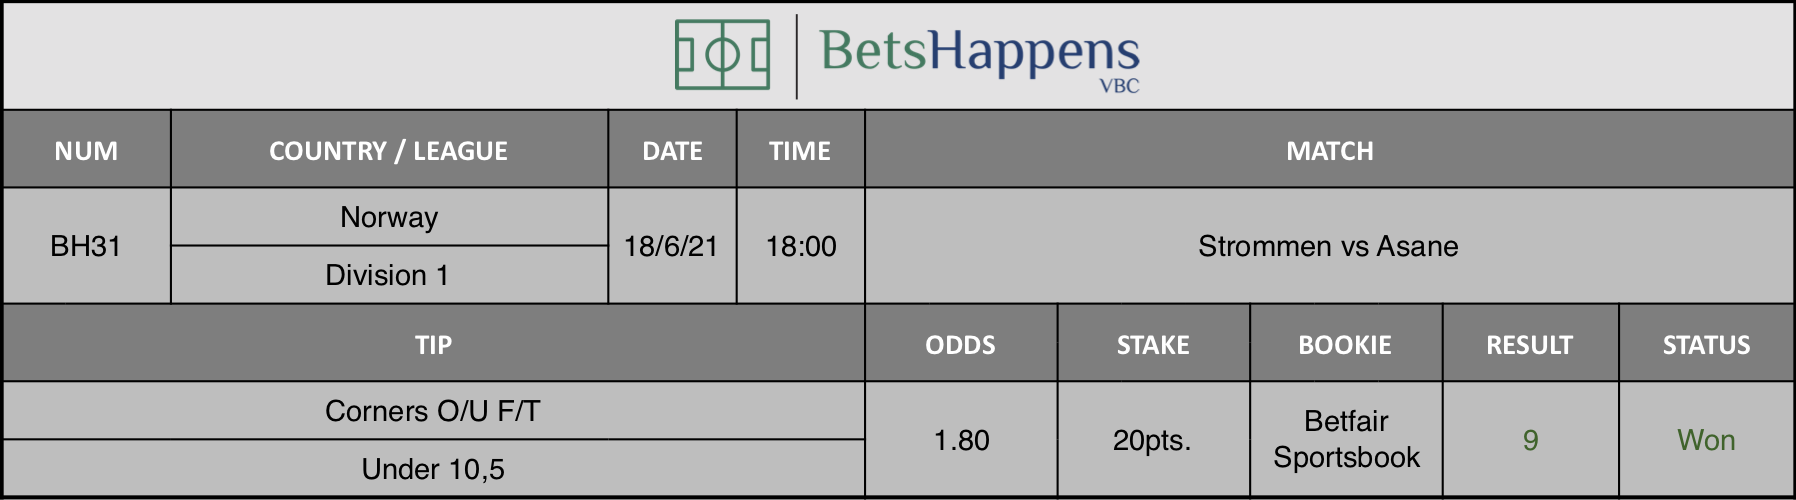 Results of our tip for the Strommen vs Asane Match Corners O/U F/T Under 10,5 is recommended.